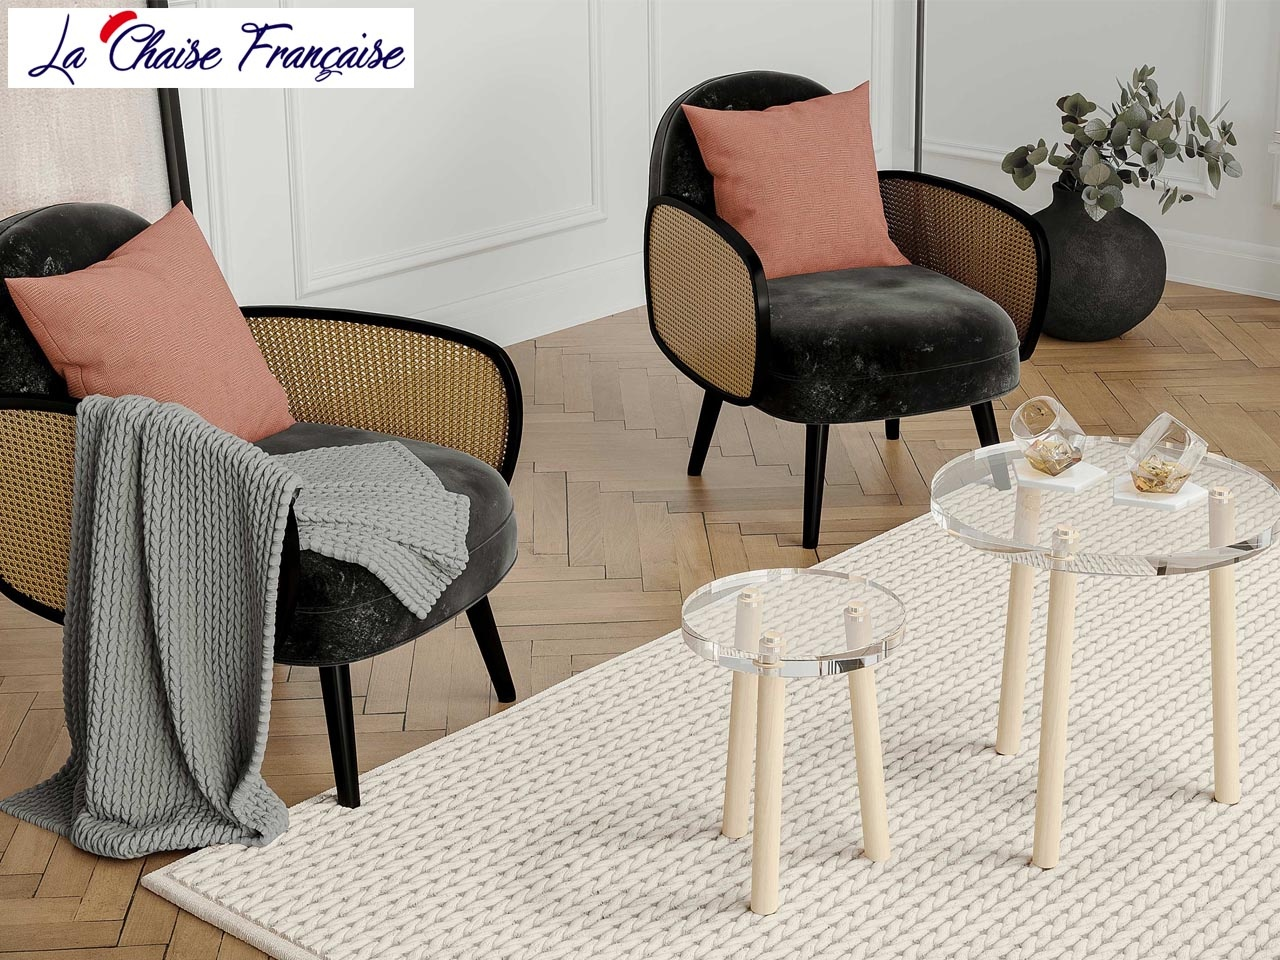 La Chaise Fran�aise s'inspire du mobilier d'antan pour une d�co design et Made in France